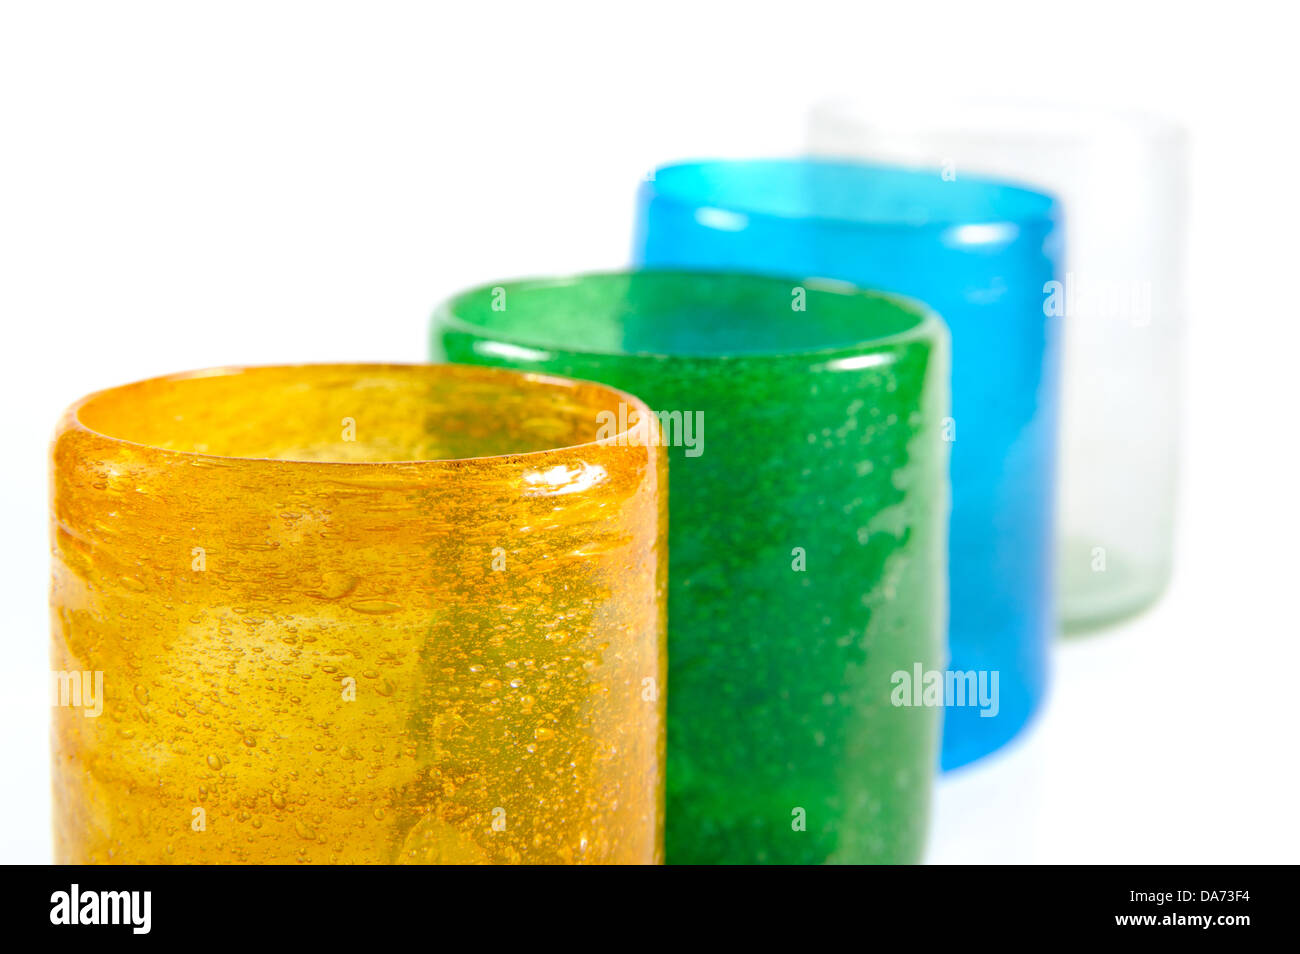 group of multi coloured glass cups on white background - Stock Image